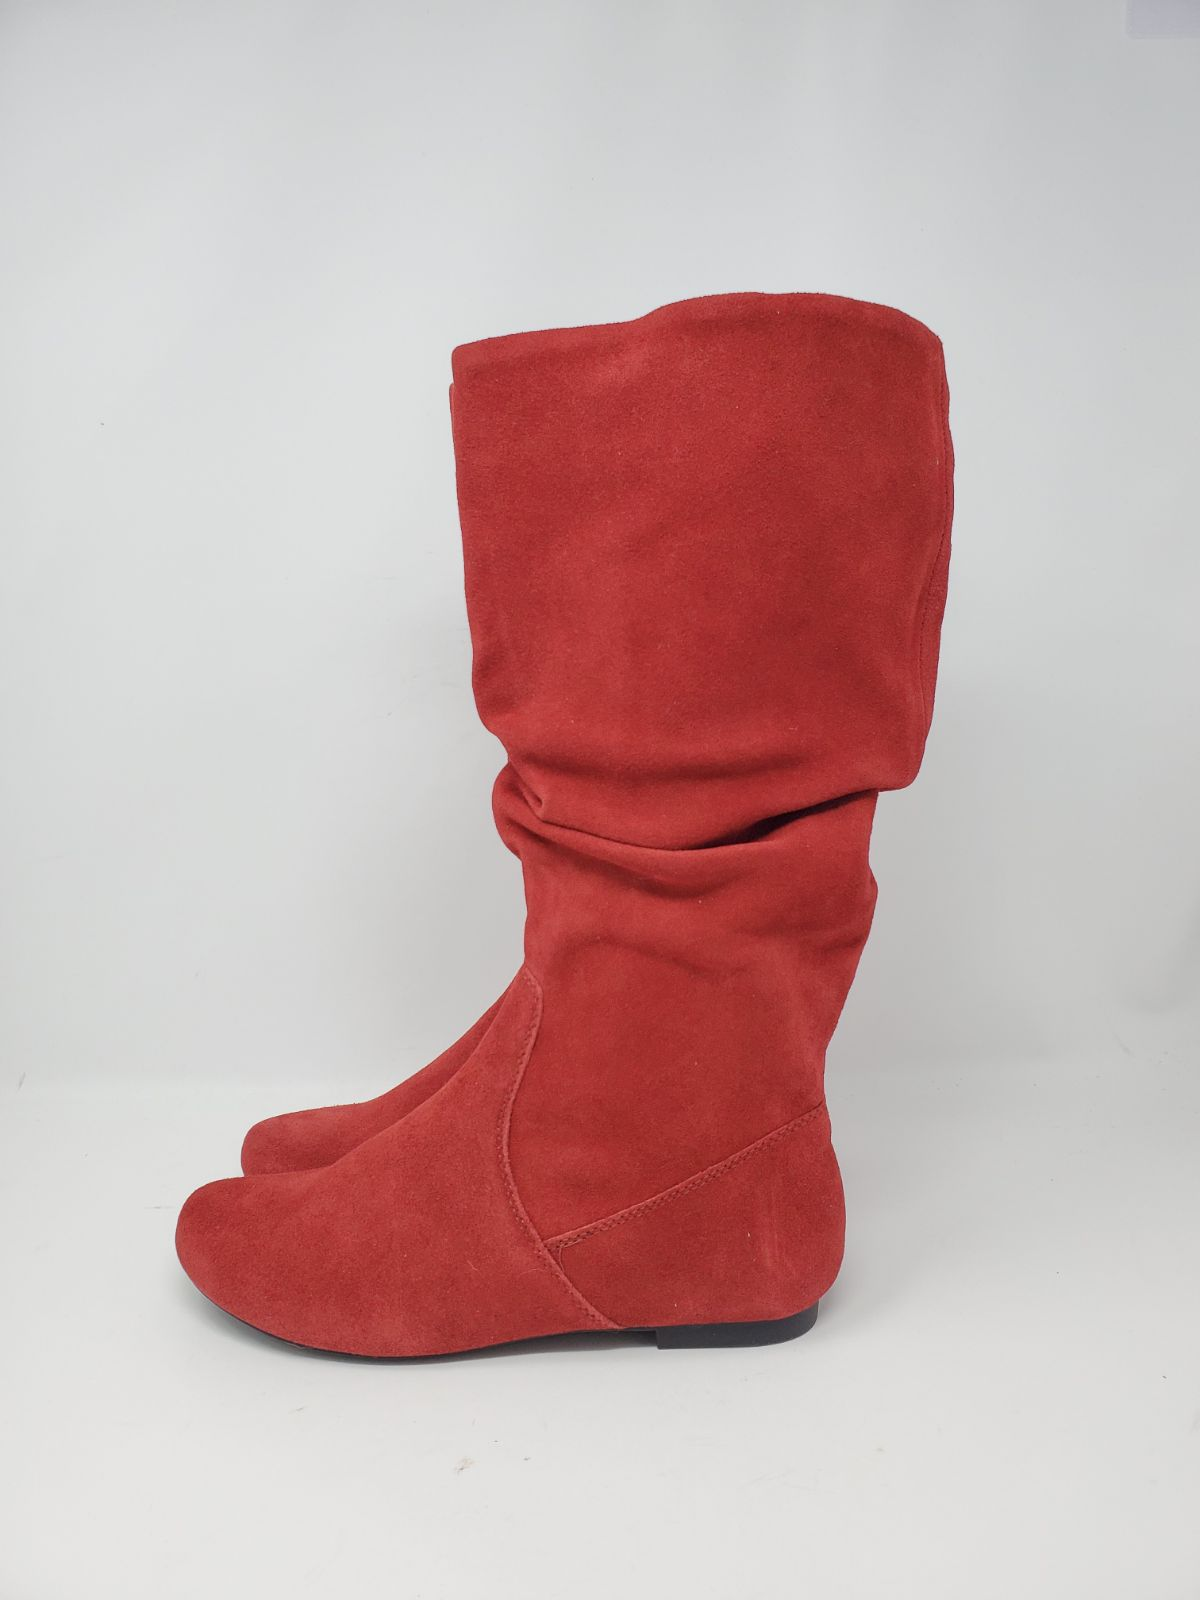 Brand new red suede slouch boots